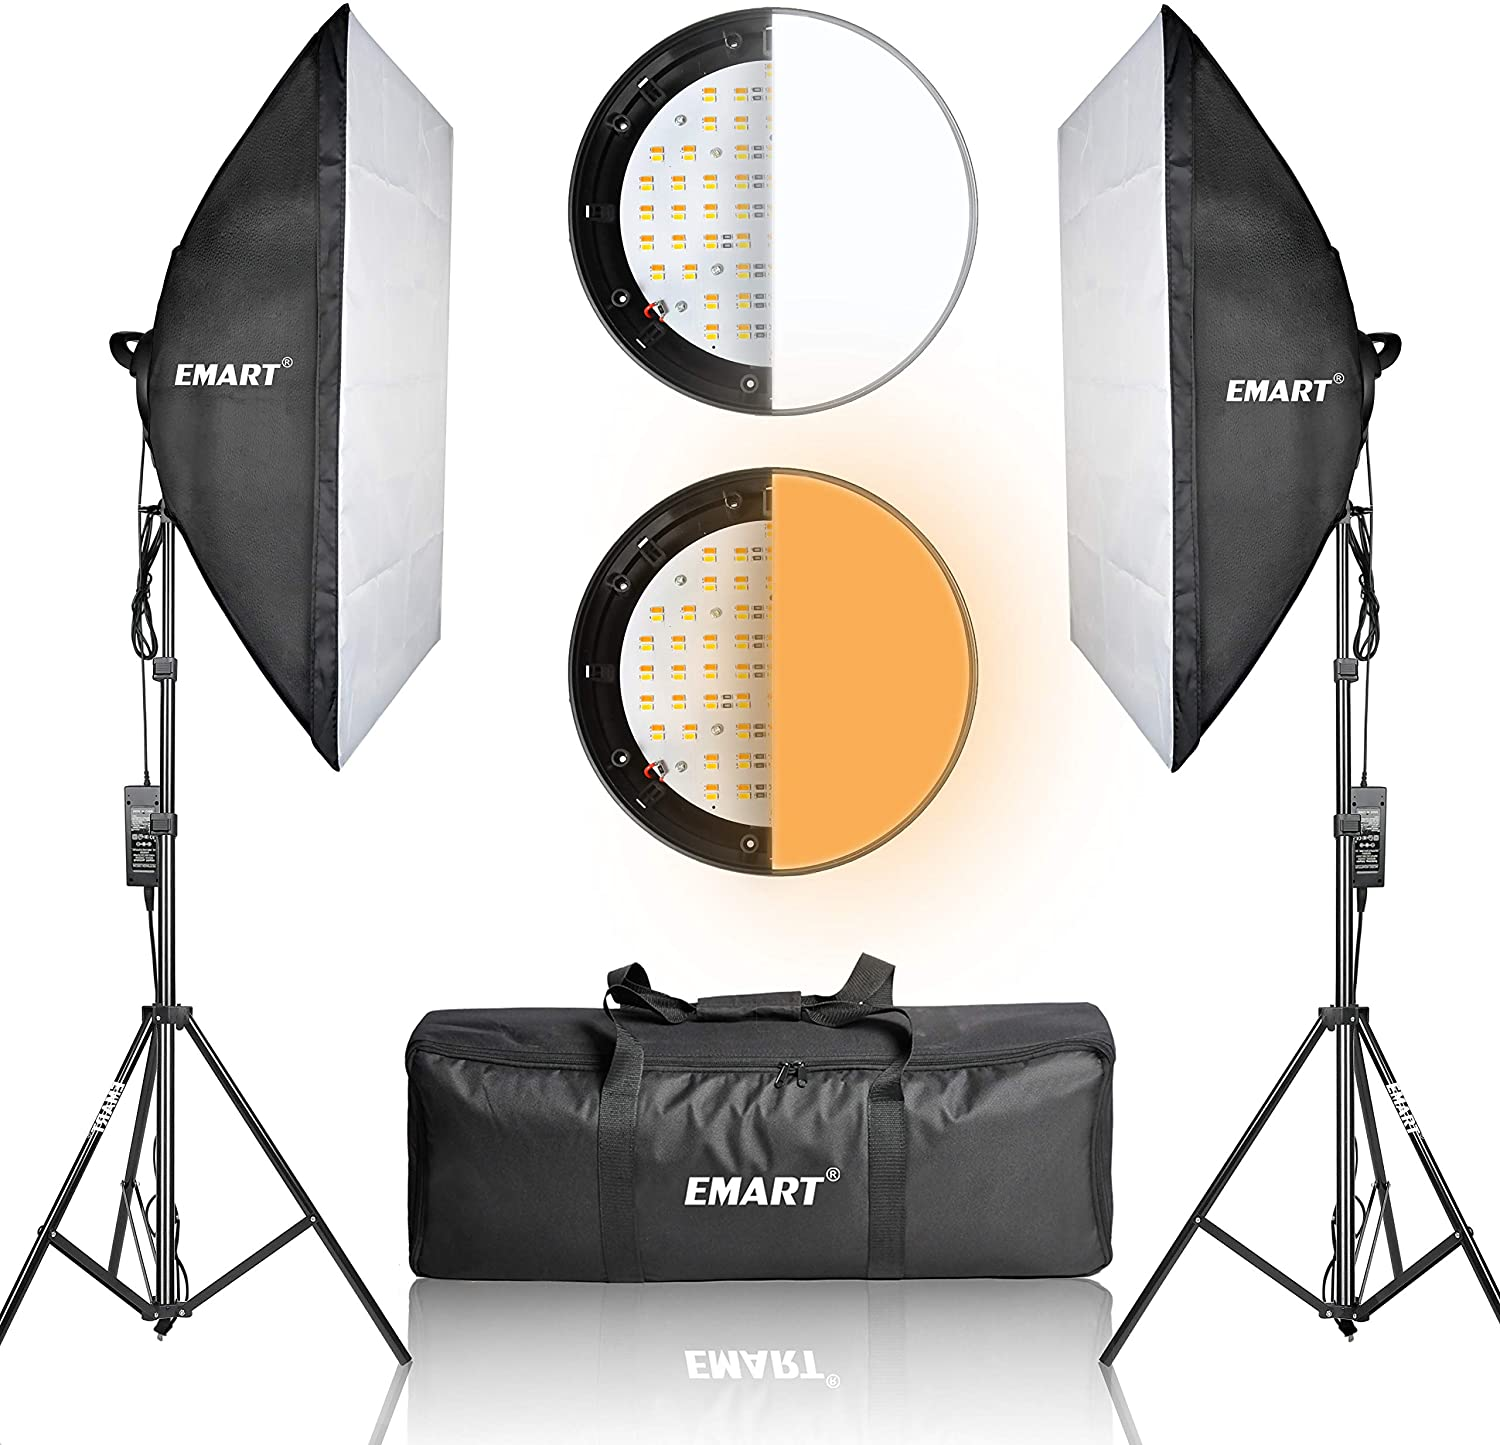 or I 2 Bulbs Suitable for a variety of Studios Hopeg Photography Light Set Softbox Lighting Kit Professional Studio Photography Continuous Equipment with 85W 5600K E27 Socket Light and 2 Reflectors